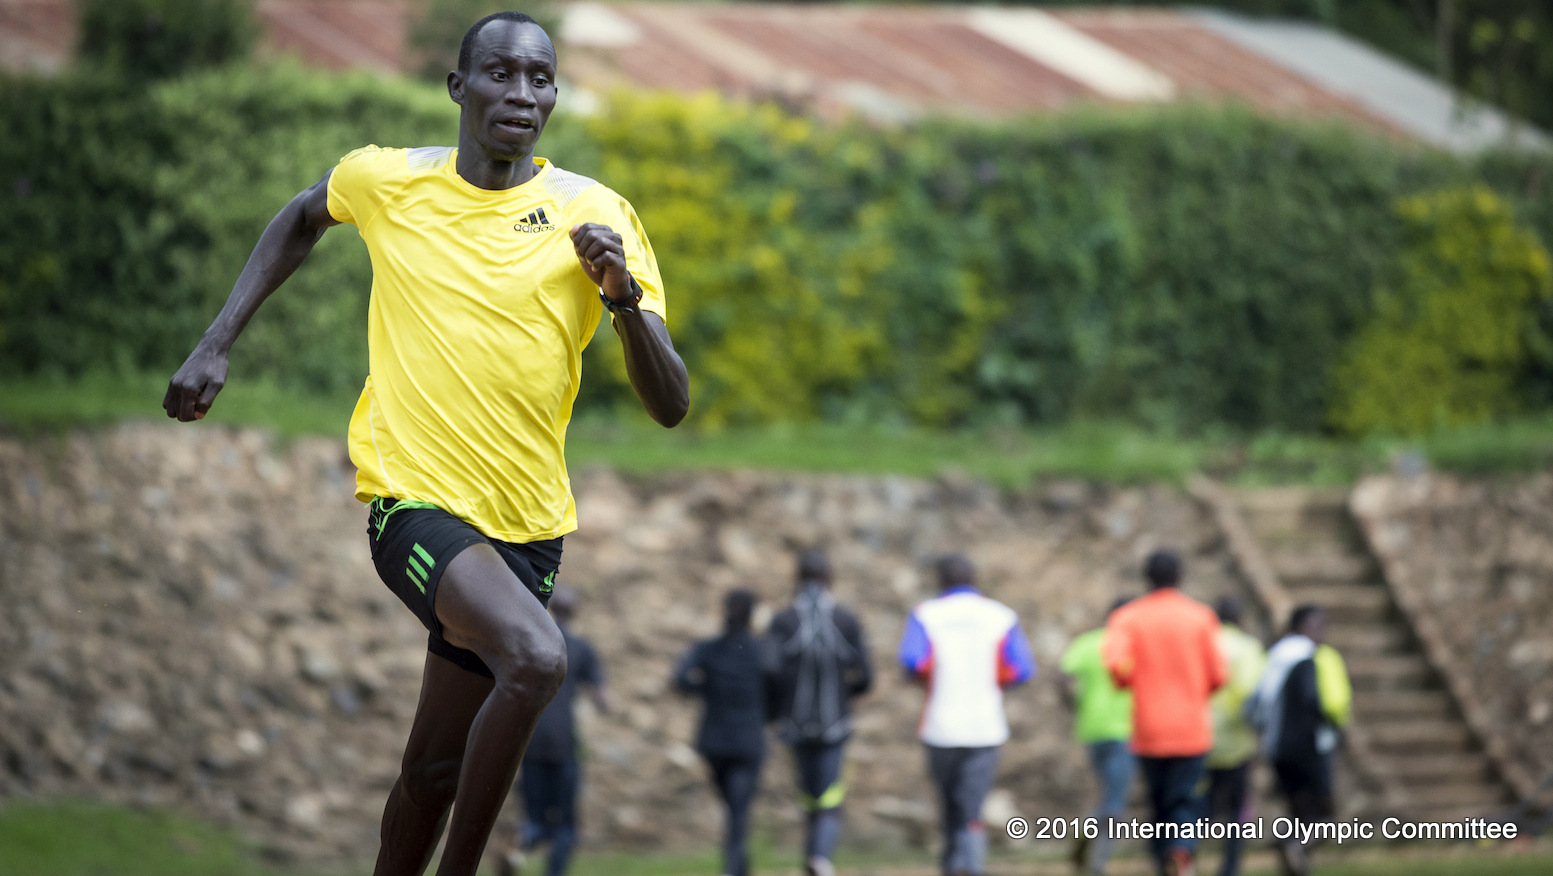 South Sudanese refugee James Nyang Chiengjiek has been selected together with nine fellow refugees to be part of the Refugee Olympic Team (ROT) at the Olympic Games Rio 2016, 15 years after fleeing his home country.